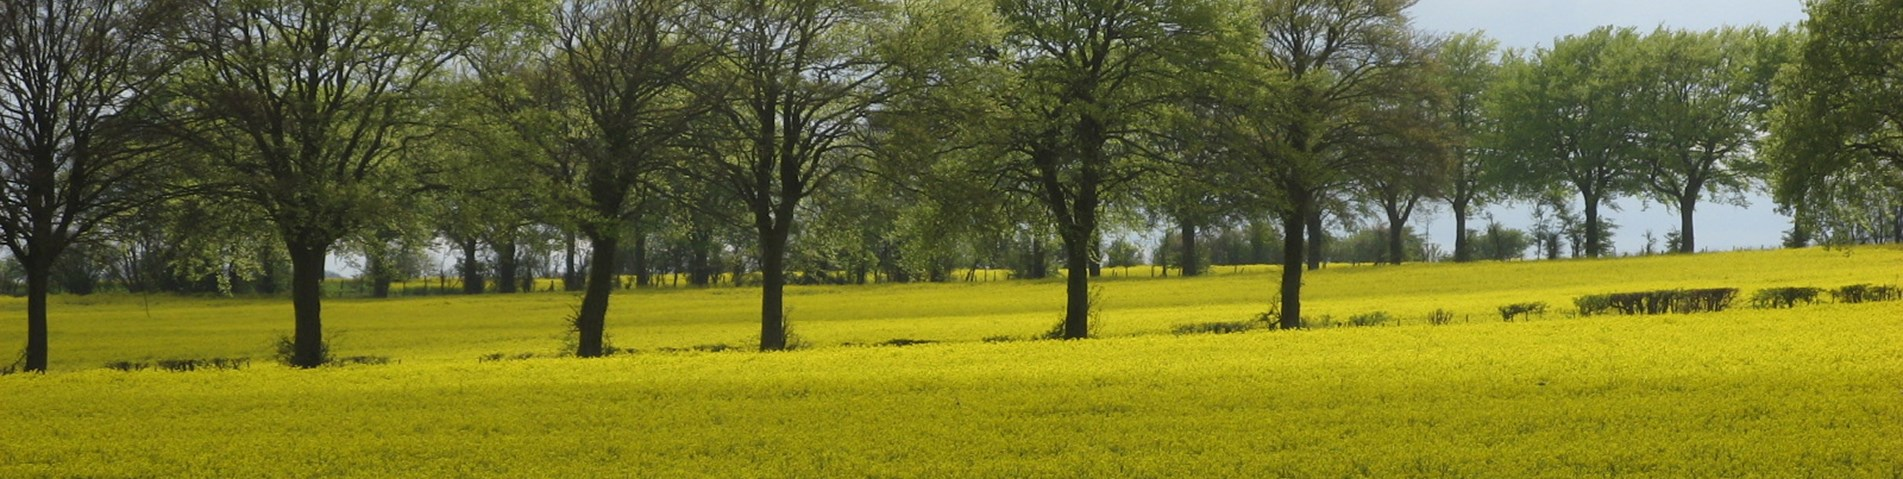 Fig 8b Trees in hedgerows surrounded by oilseed rape crop May 2012 Paul Burgess copy.jpg